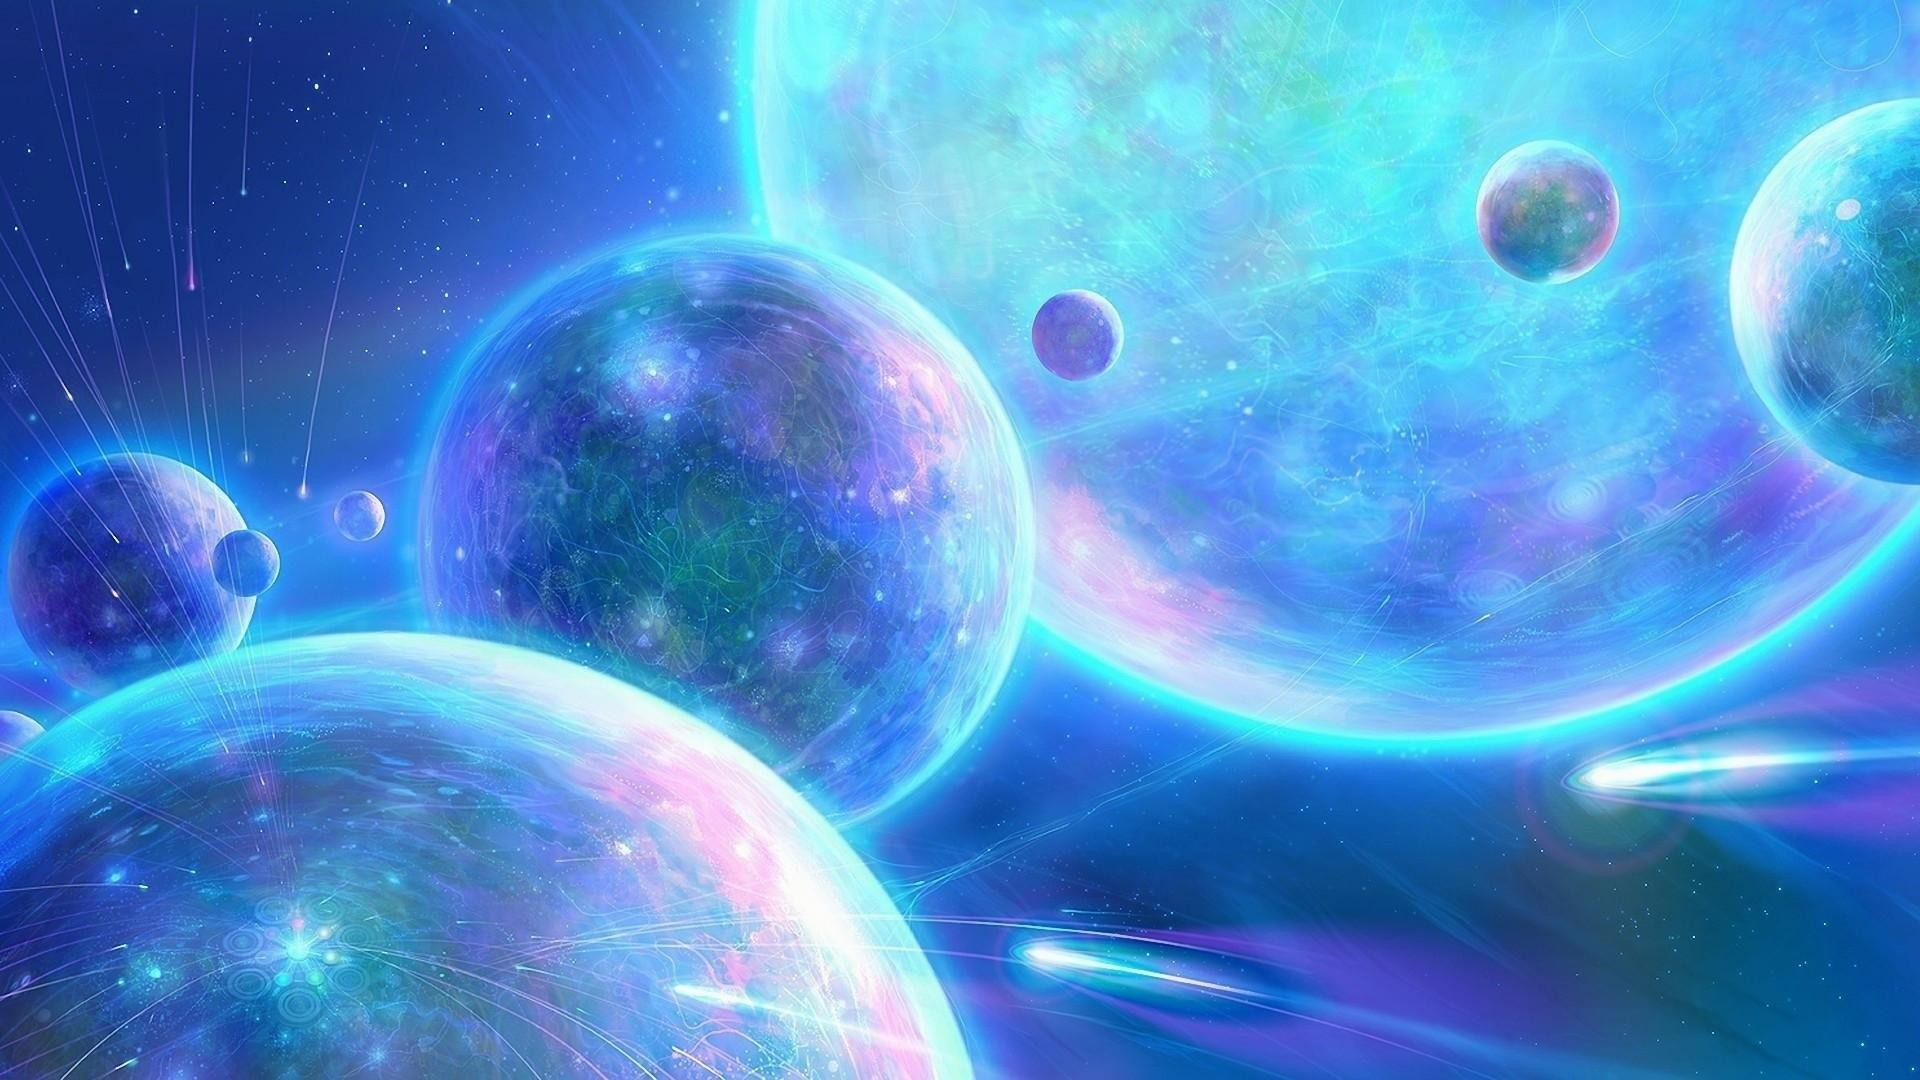 wallpaper.wiki-Outer-Space-Planets-Blue-1080p-Wallpaper-